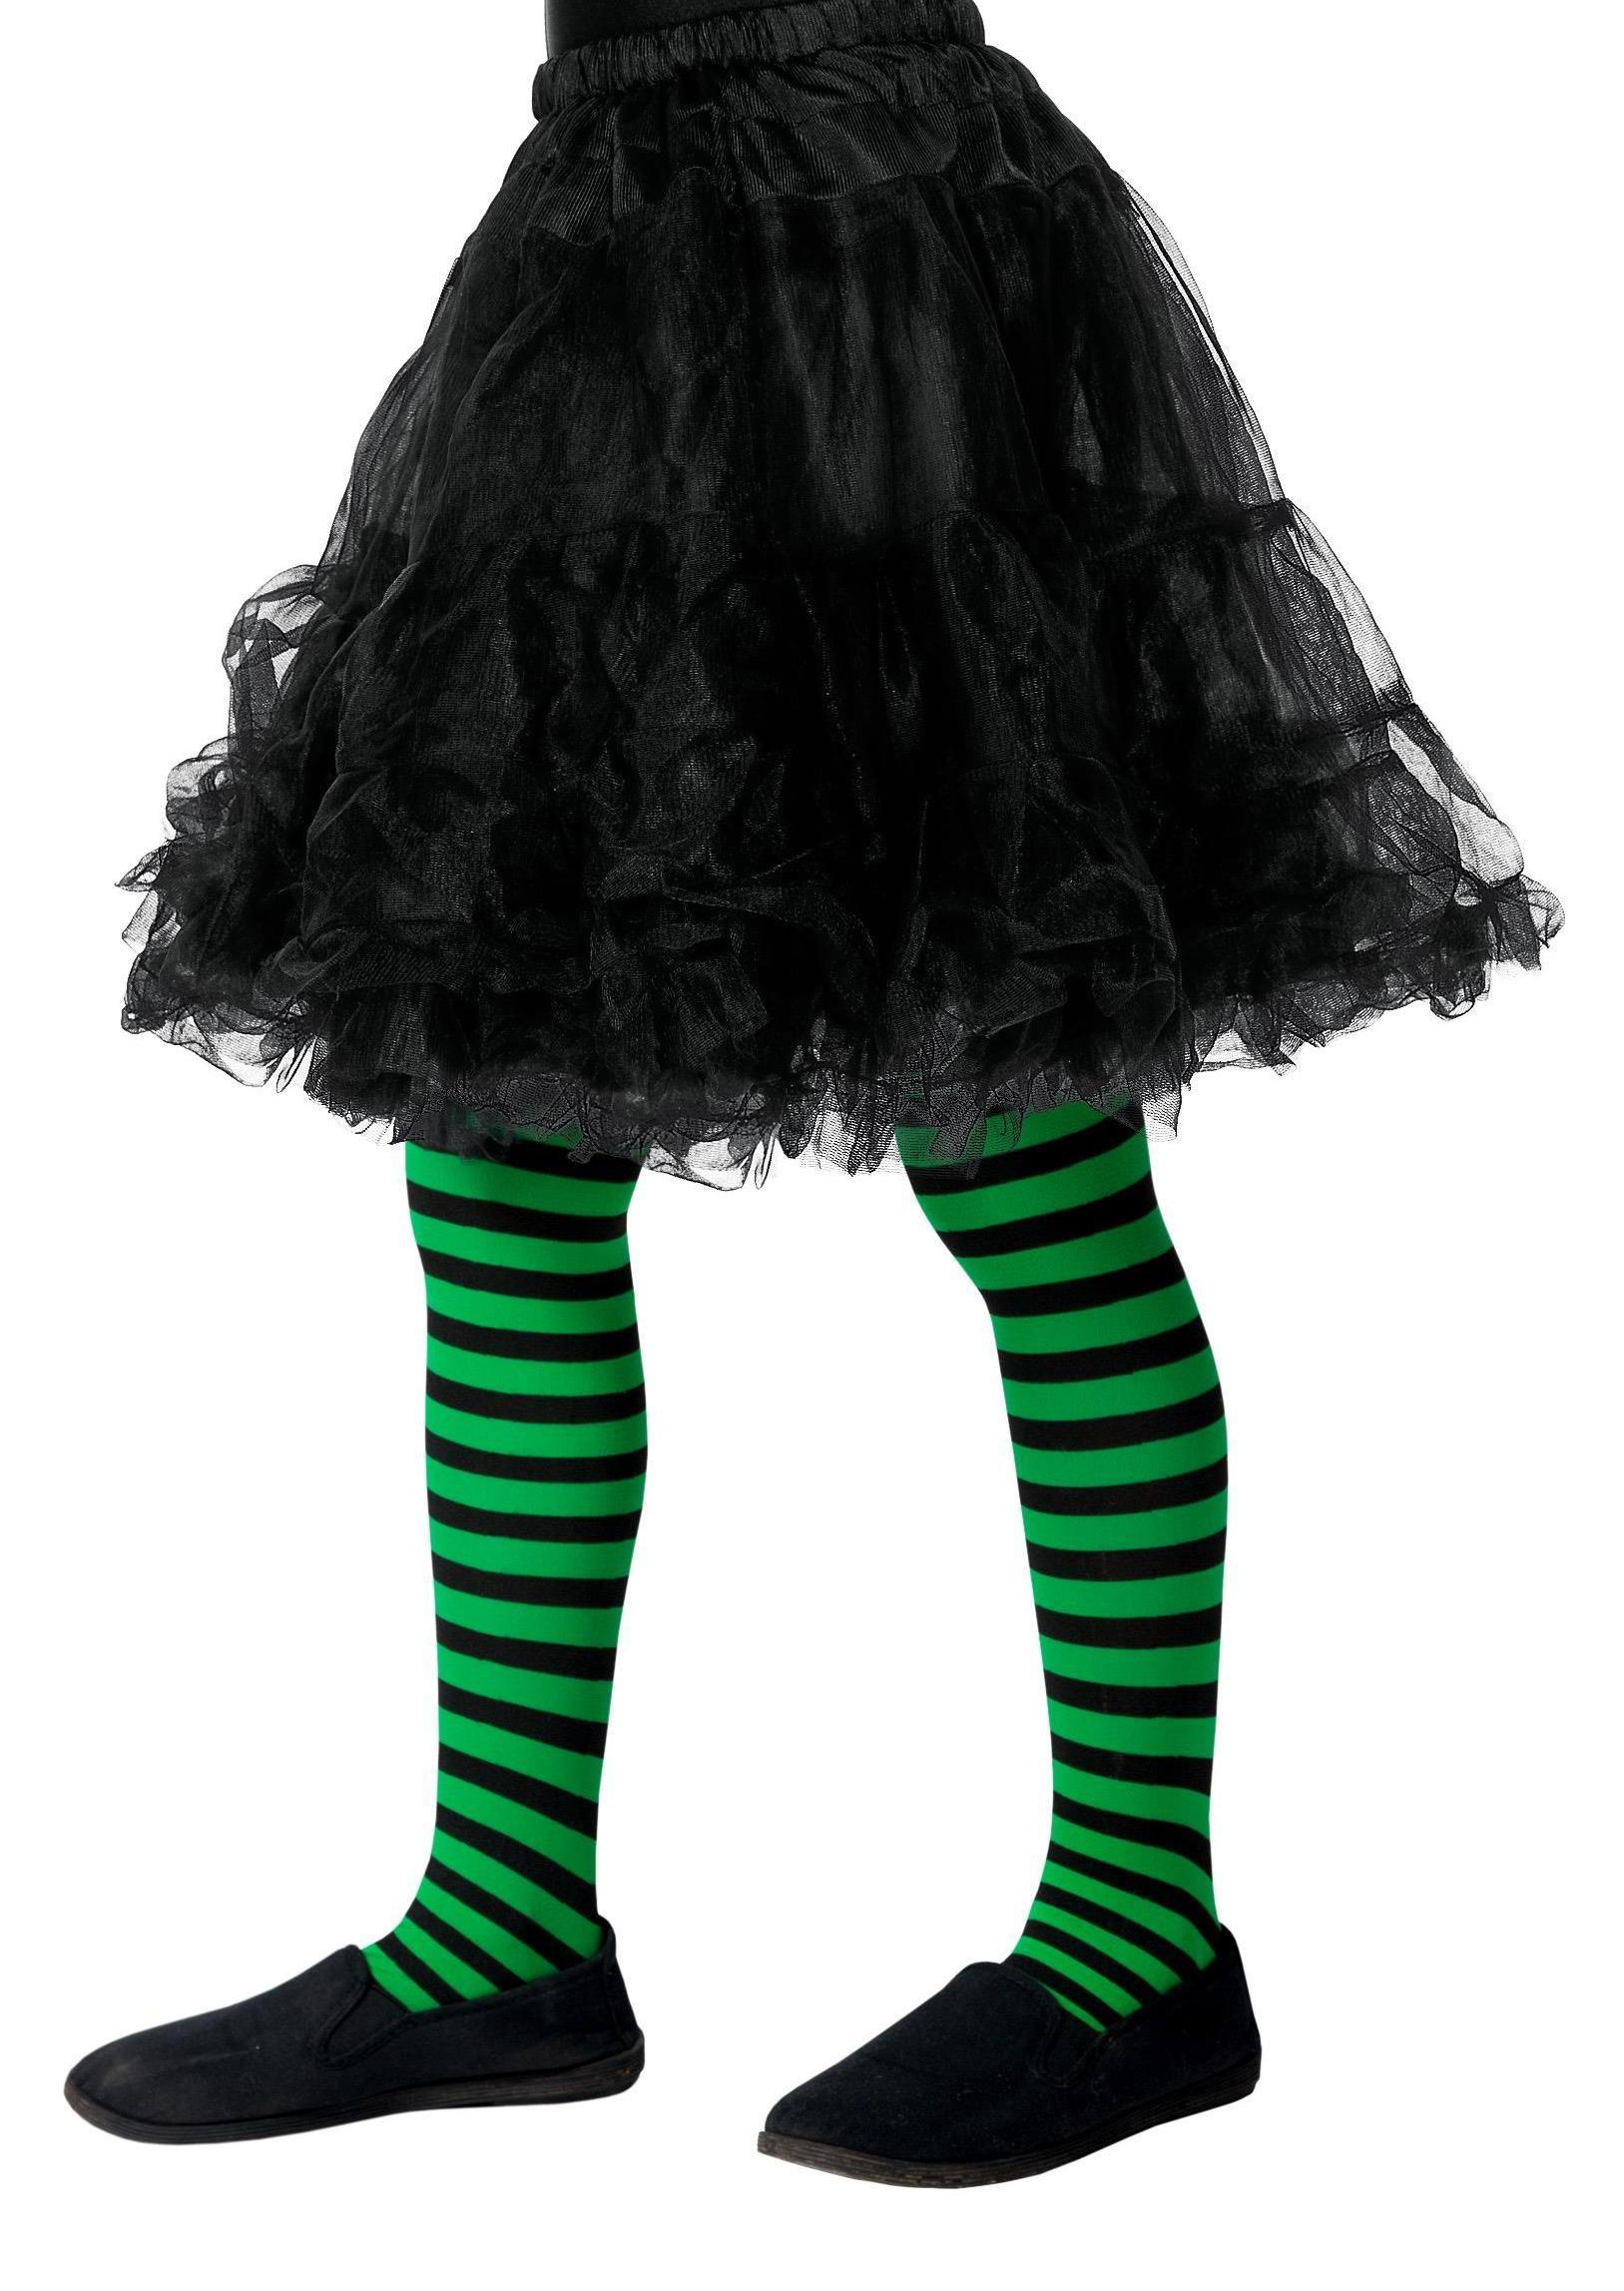 Black & Green Stripe Tights Age 6-12